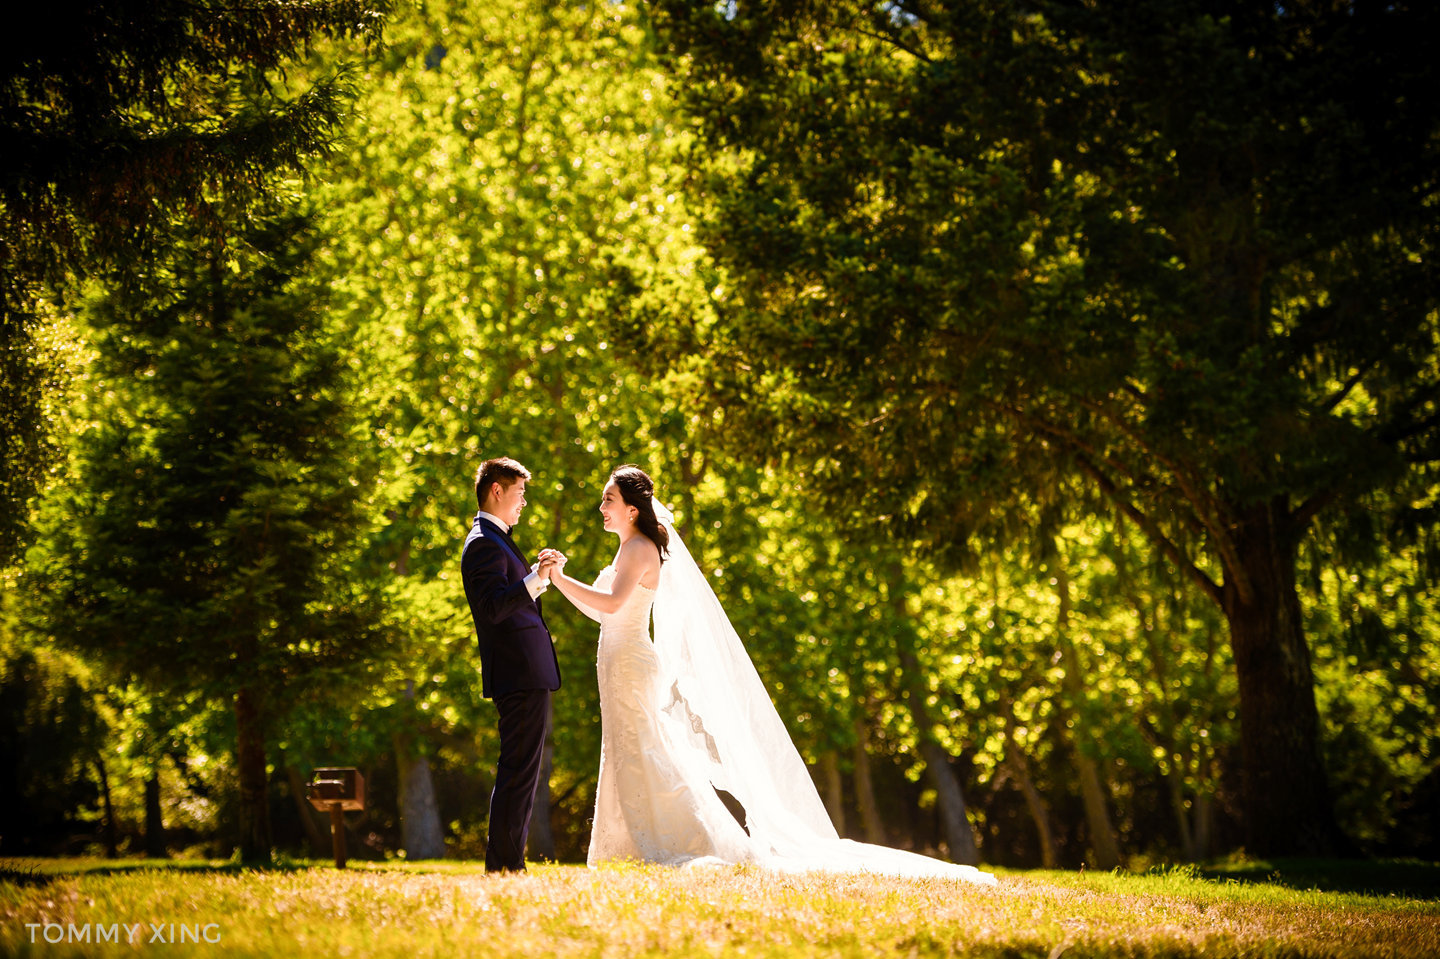 San Francisco Pre Wedding 美国旧金山湾区婚纱照 摄影师Tommy Xing Photography 06.jpg